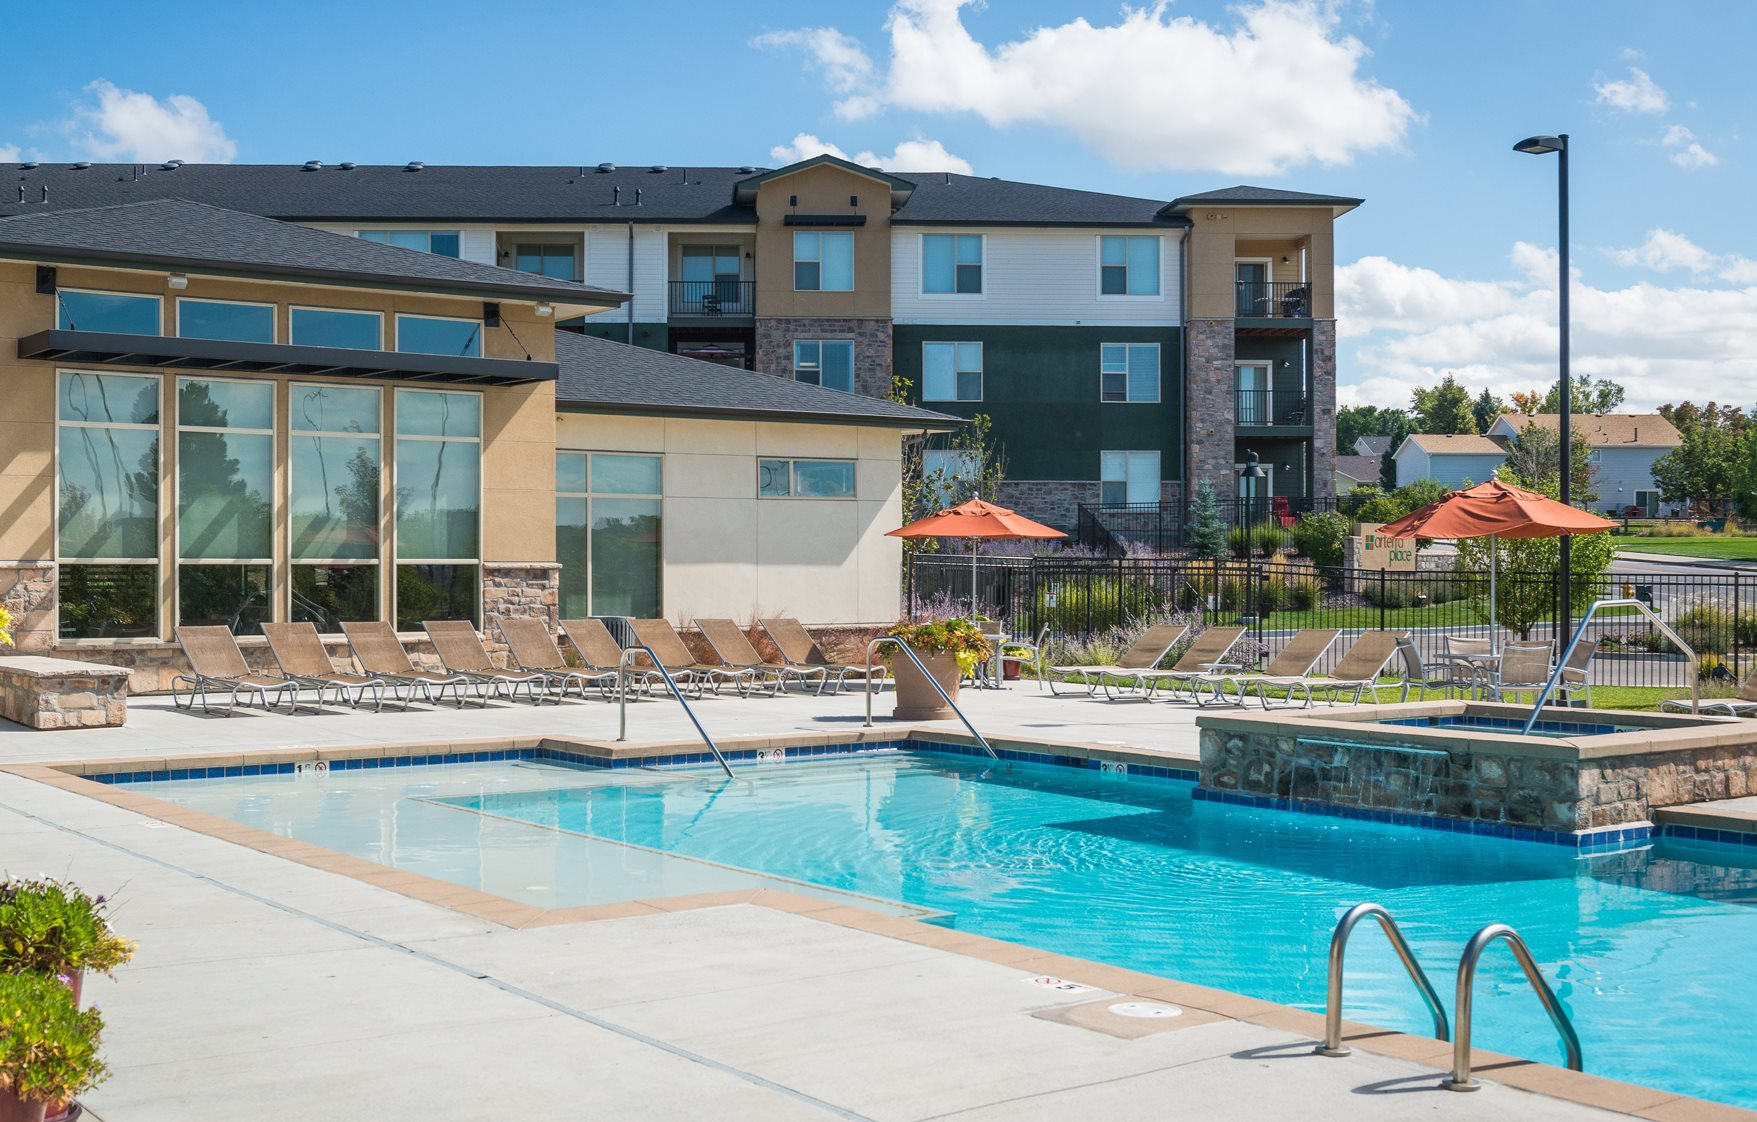 Swimming Pool at Arterra place Apartments in Aurora, CO